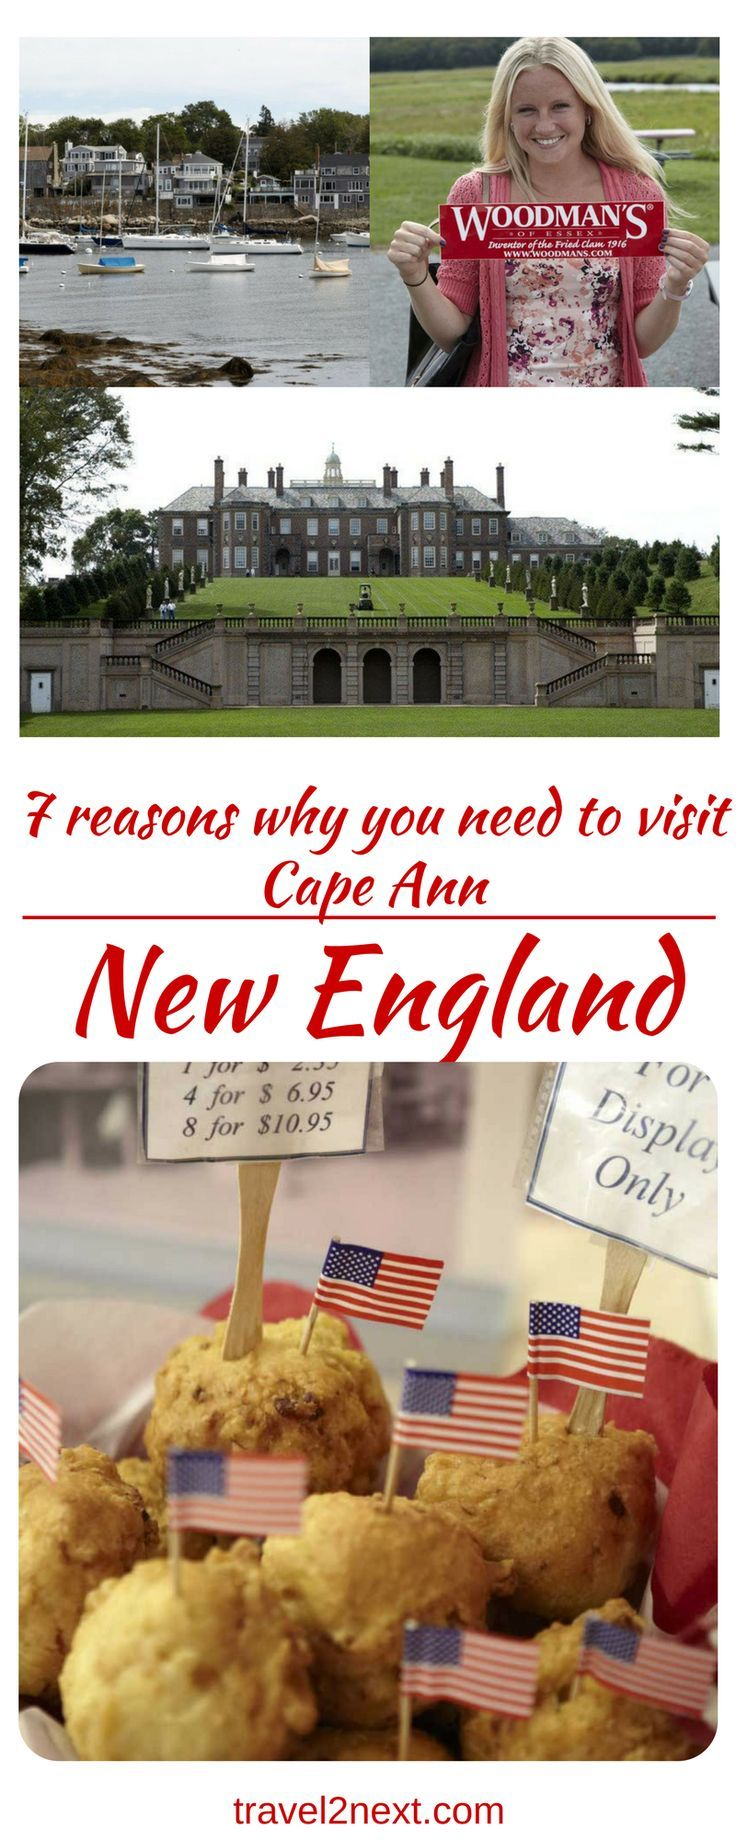 7 reasons why you need to visit Cape Ann in New England, USA.  Fried clams, shipbuilding history and arty seaside towns are some of the drawcards of Cape Ann.